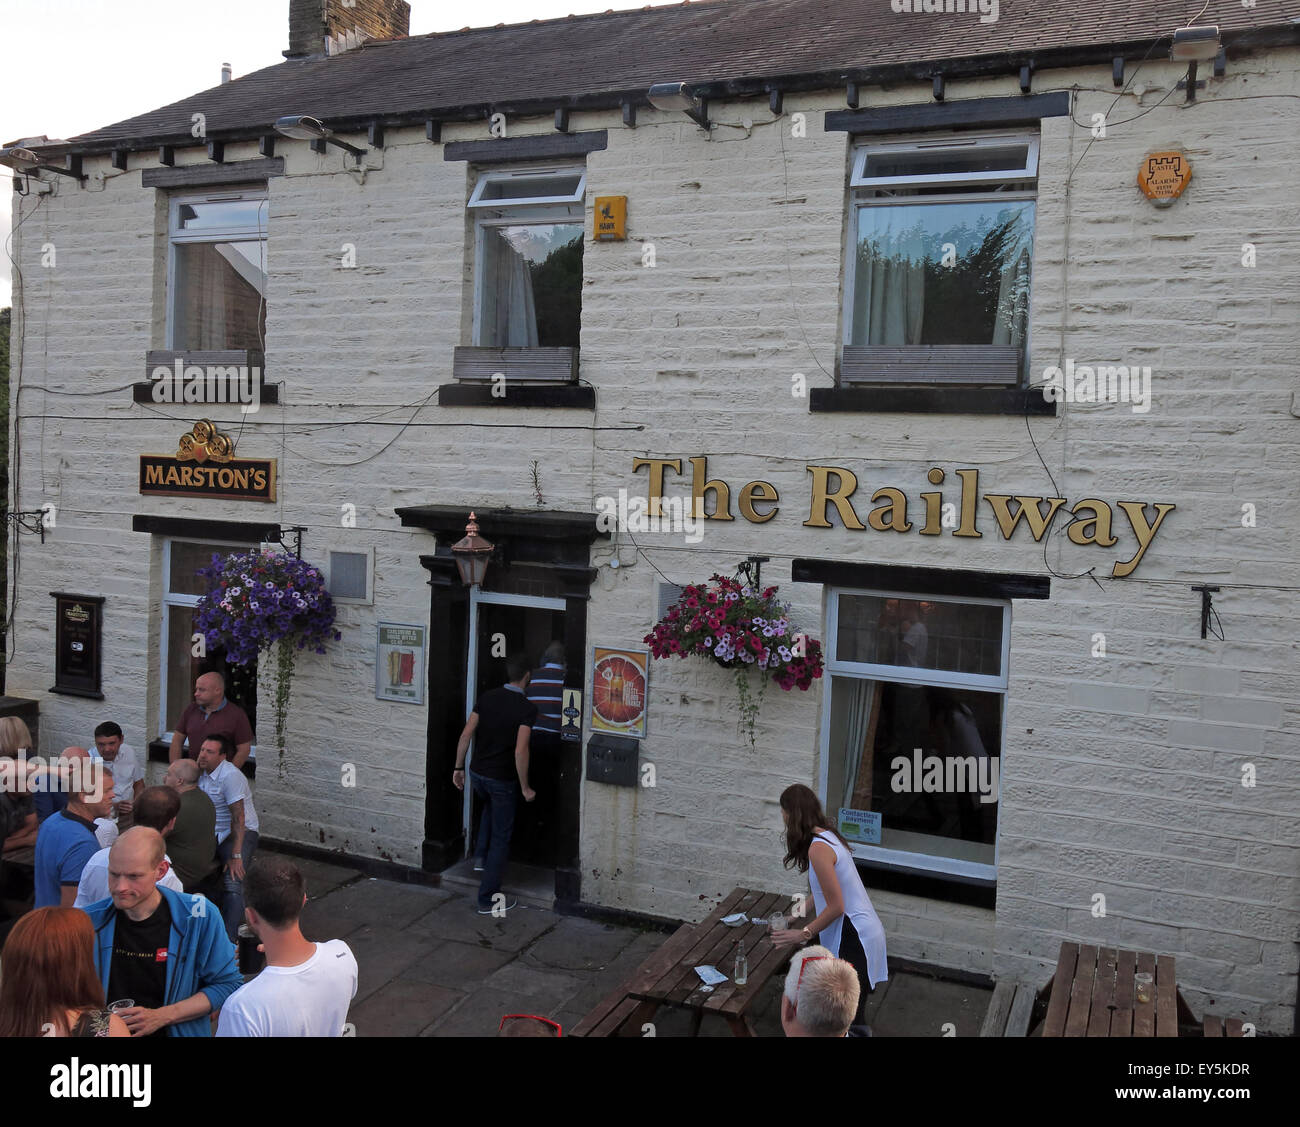 village,town,pub,bar,Marstons,station,Marsden Railway Station,railway,people,outside,exterior,Metropolitan,Borough,River Colne,Wessenden Brook,ale,CAMRA,real,real ale,England,UK,GB,Great Britain,aletrain,ale,train,transpennine,trans-pennine,trans,pennine,GoTonySmith,Buy Pictures of,Buy Images Of